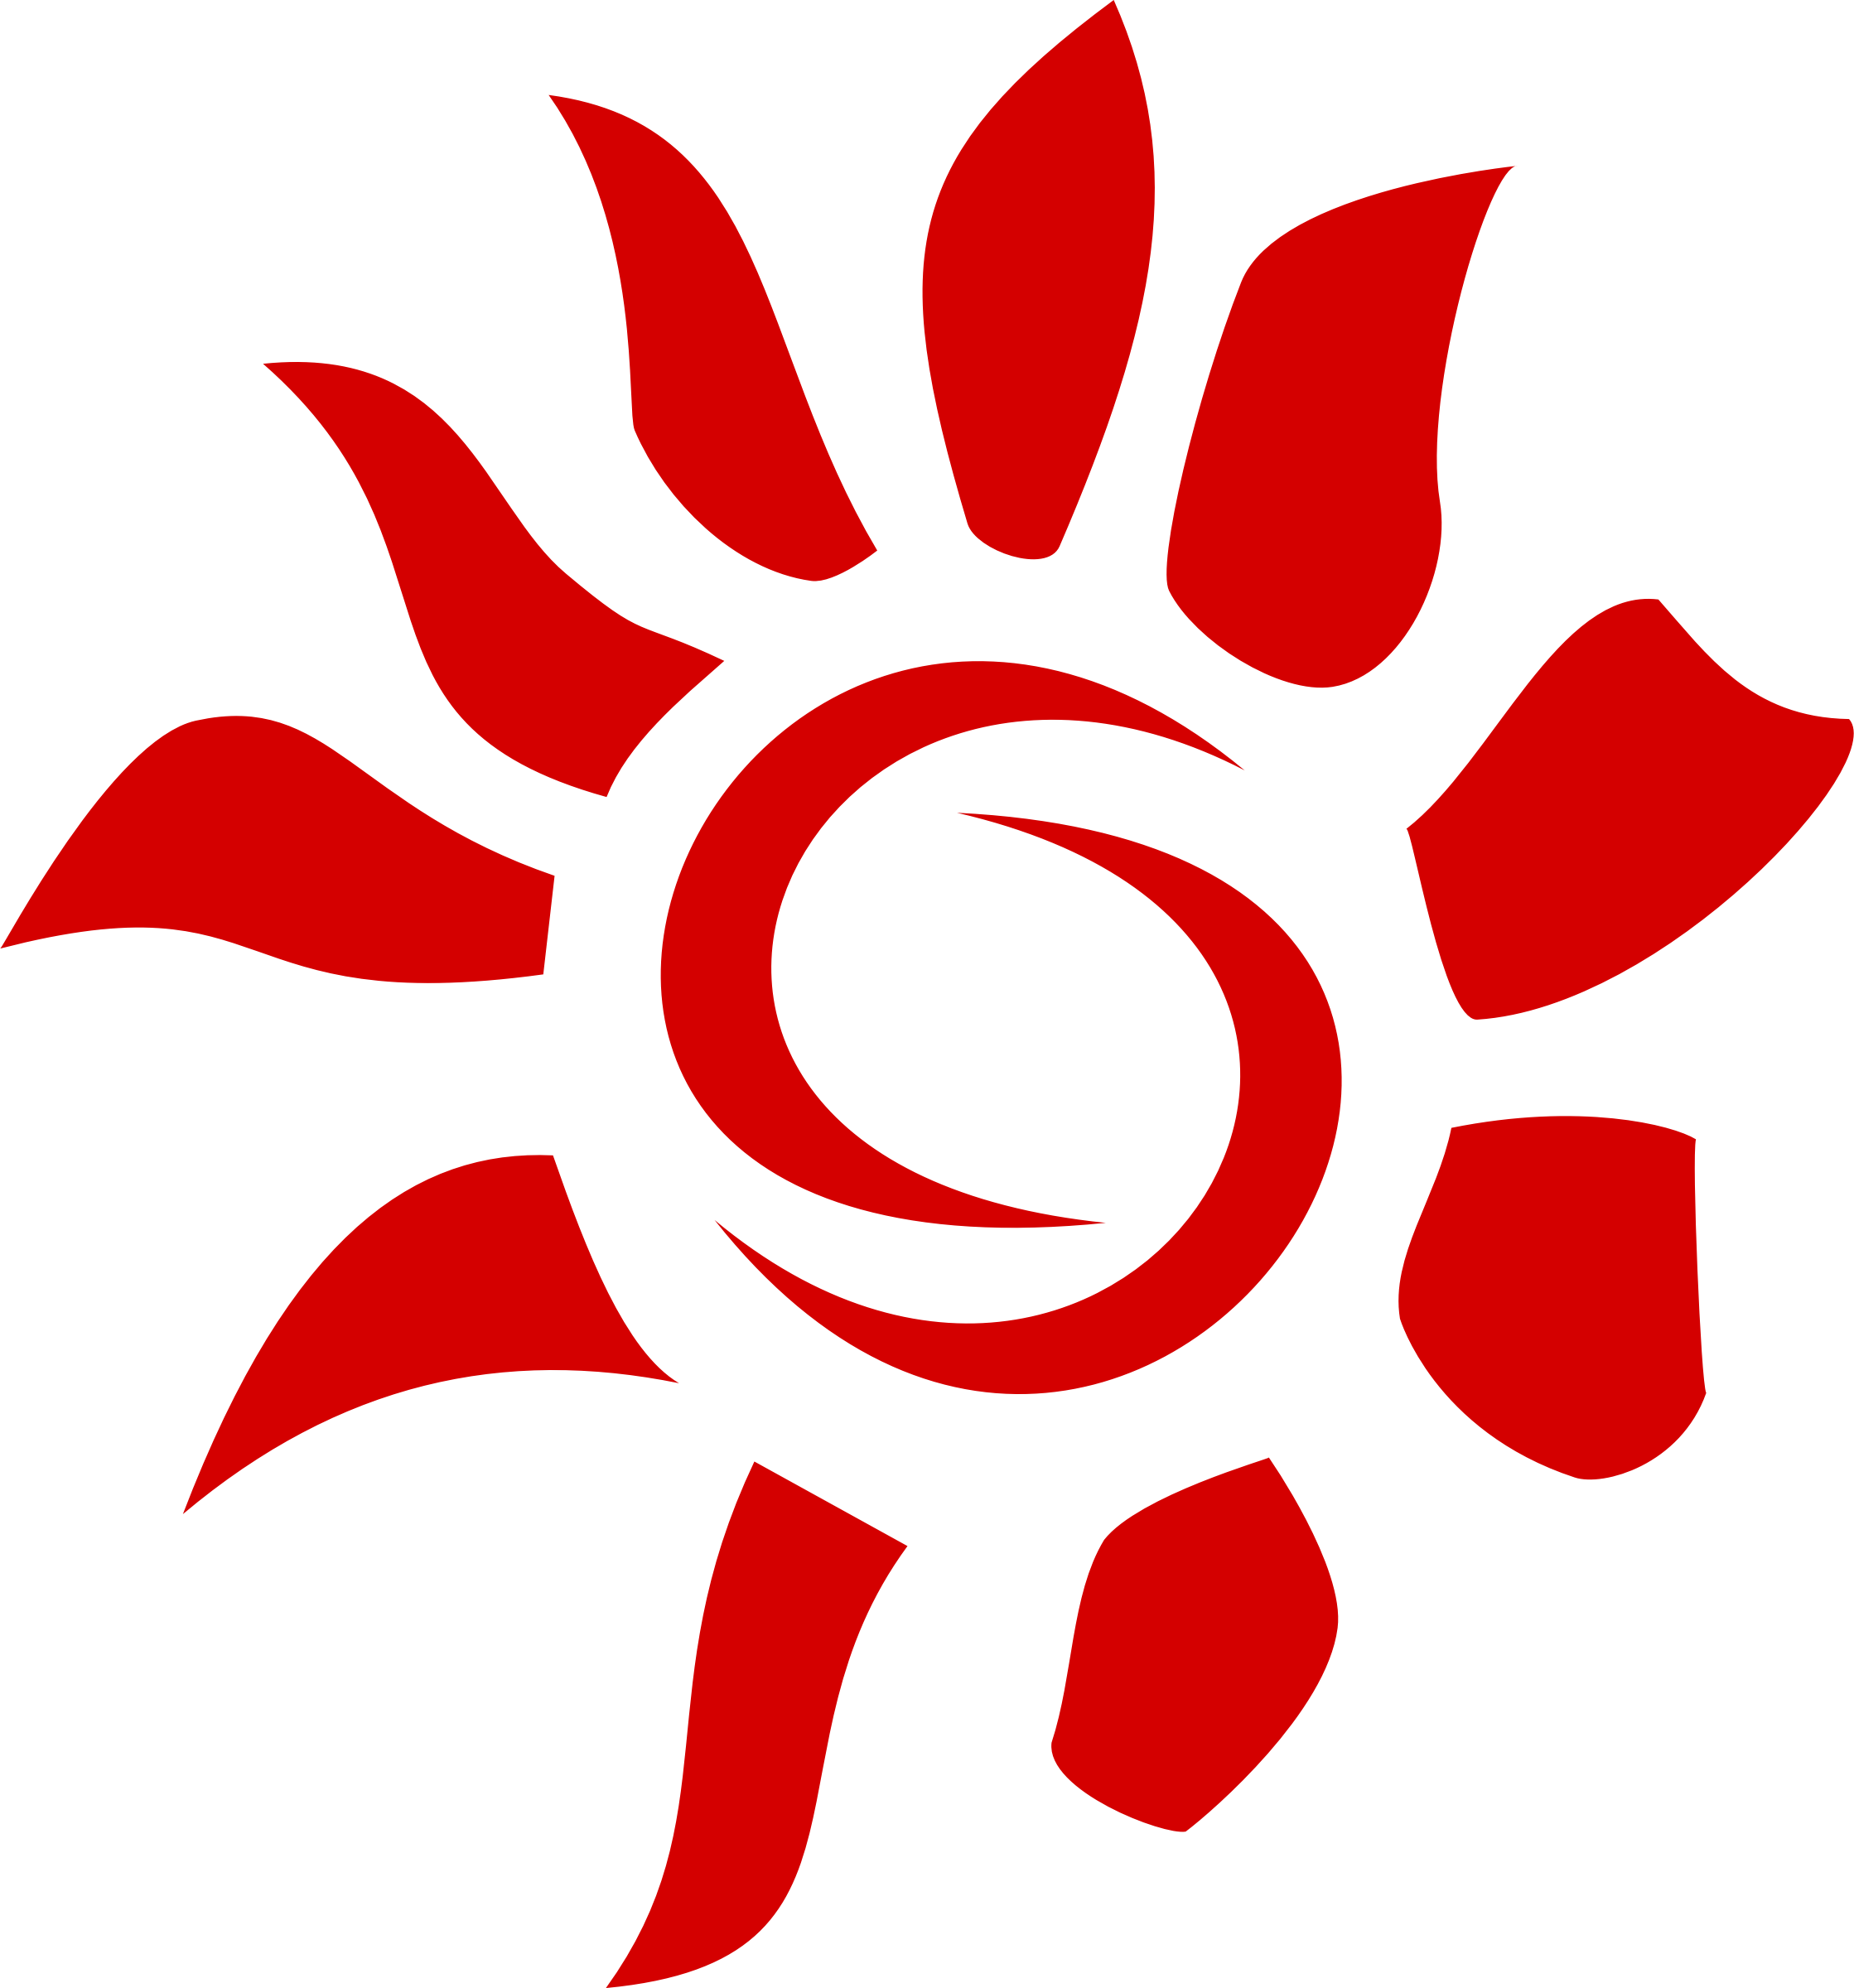 Sun Icon by uroesch